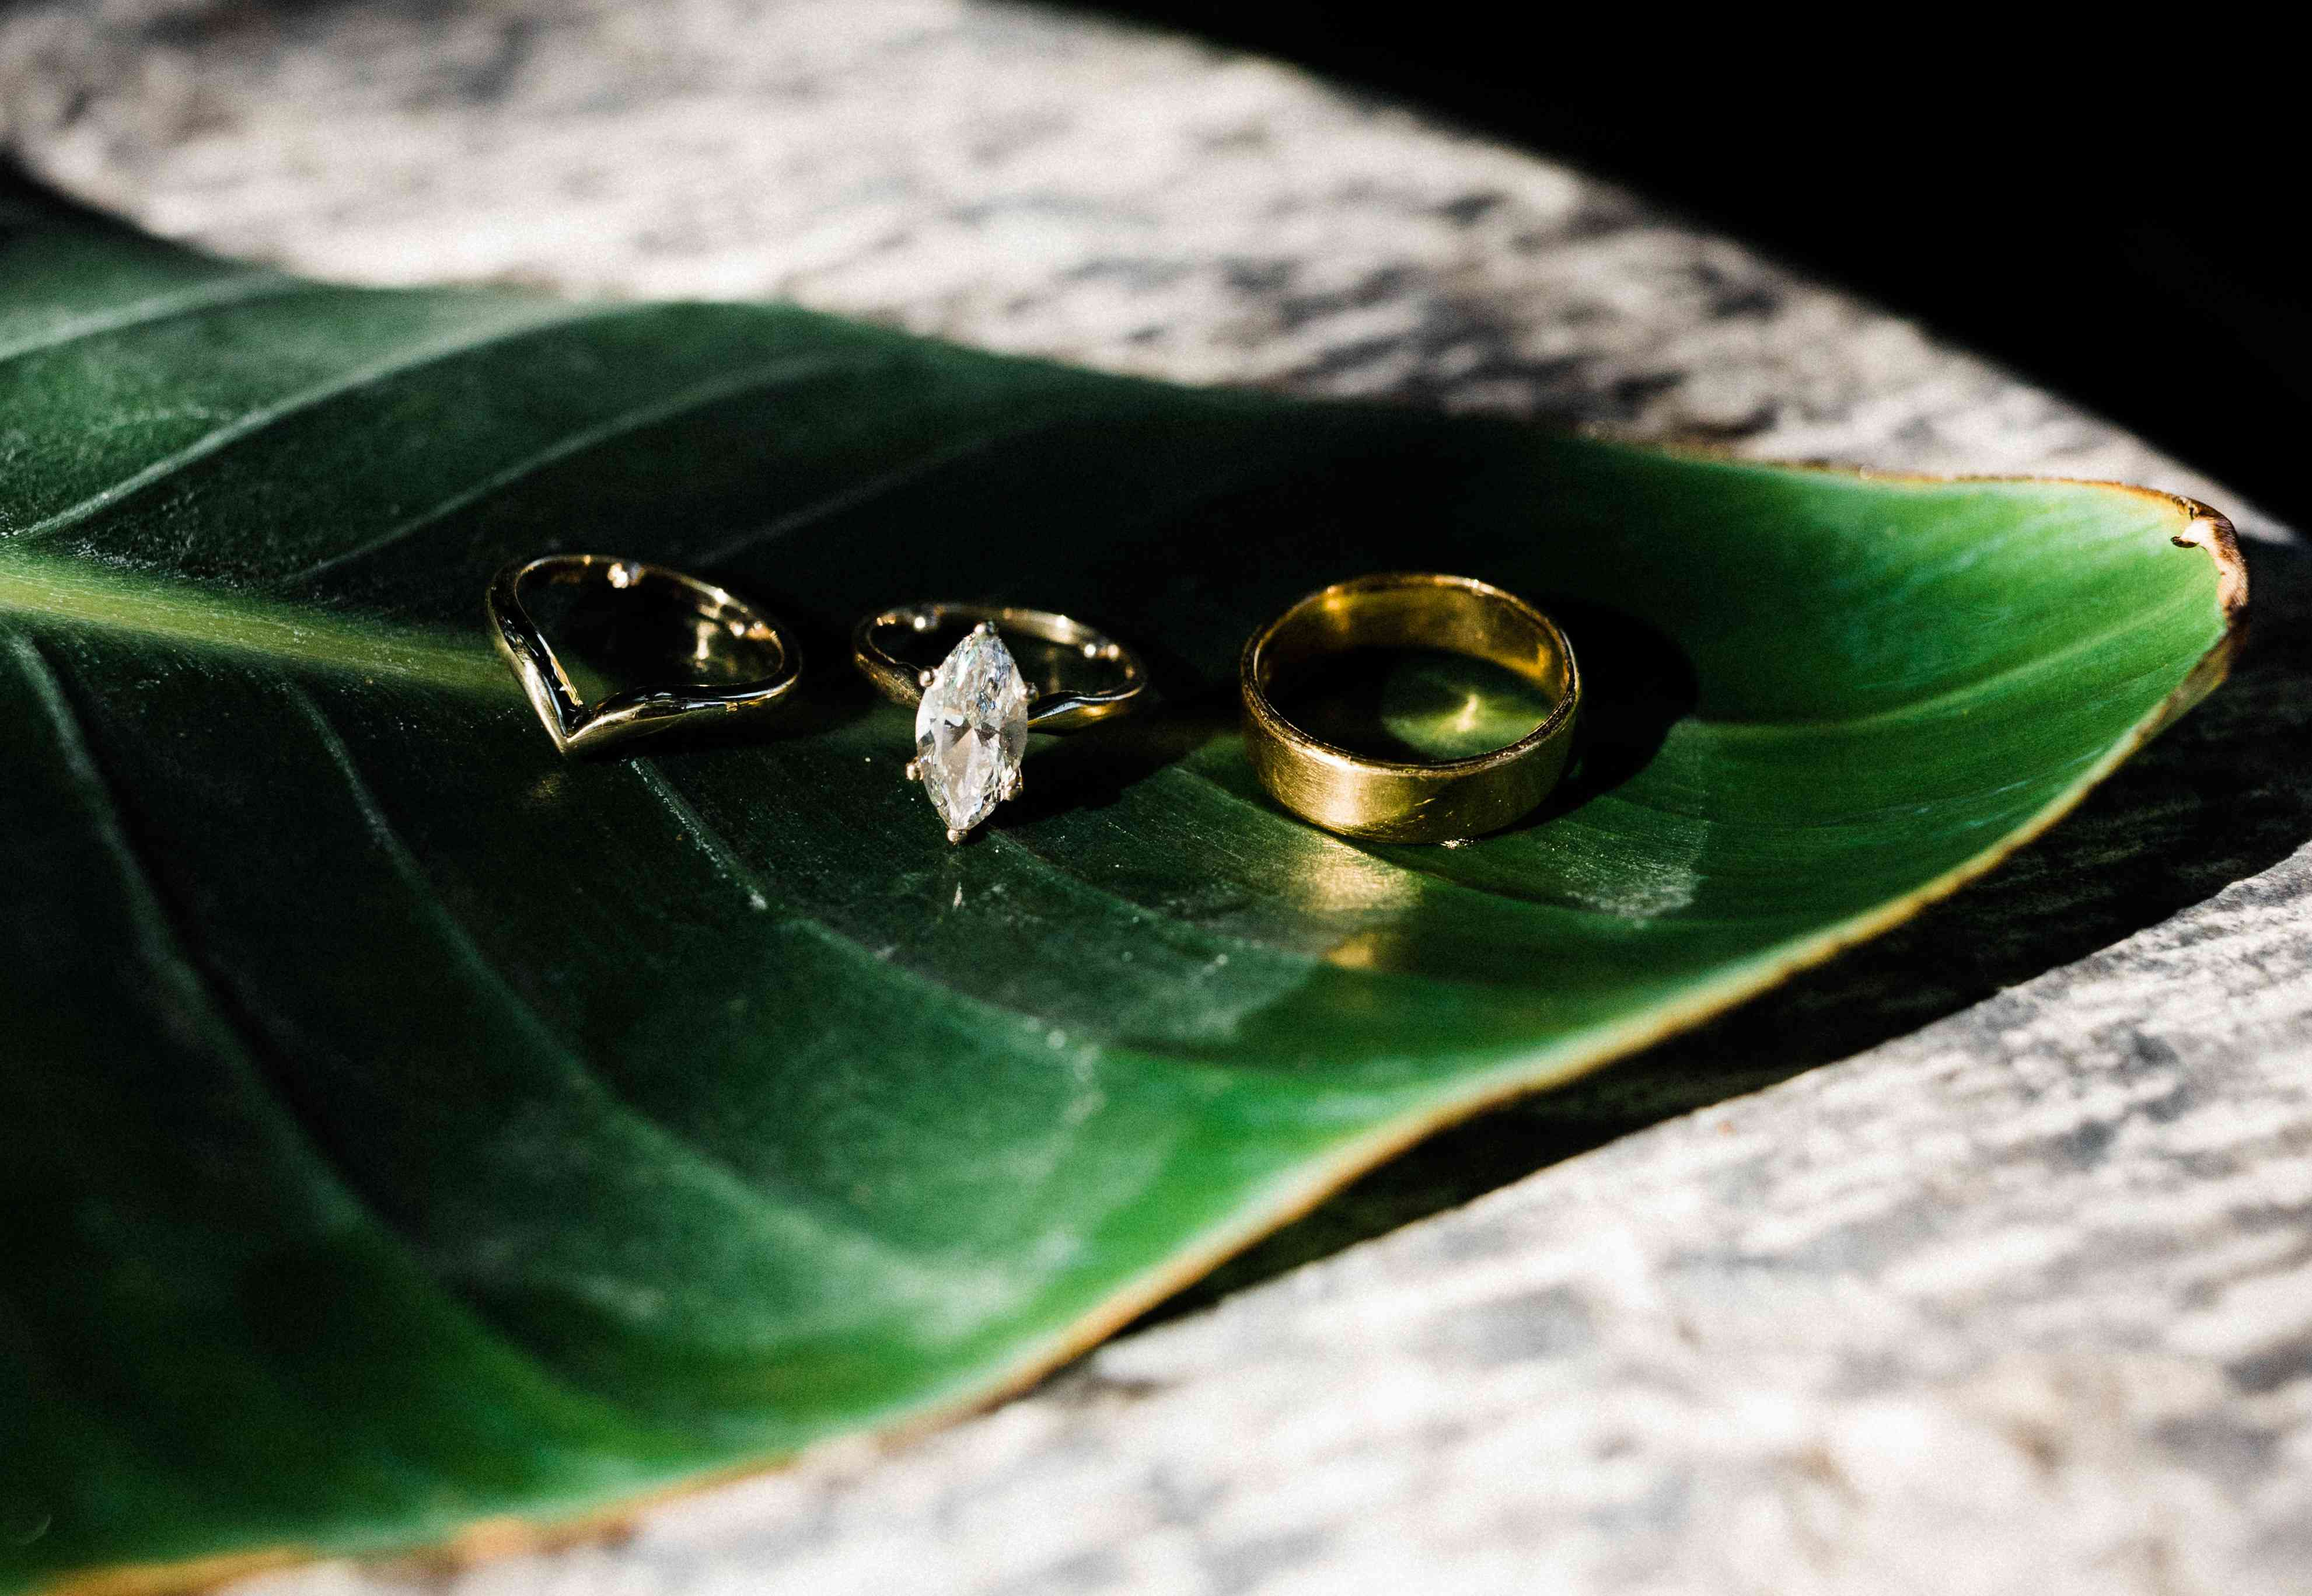 Wedding band, engagement ring, and wedding band resting on a leaf